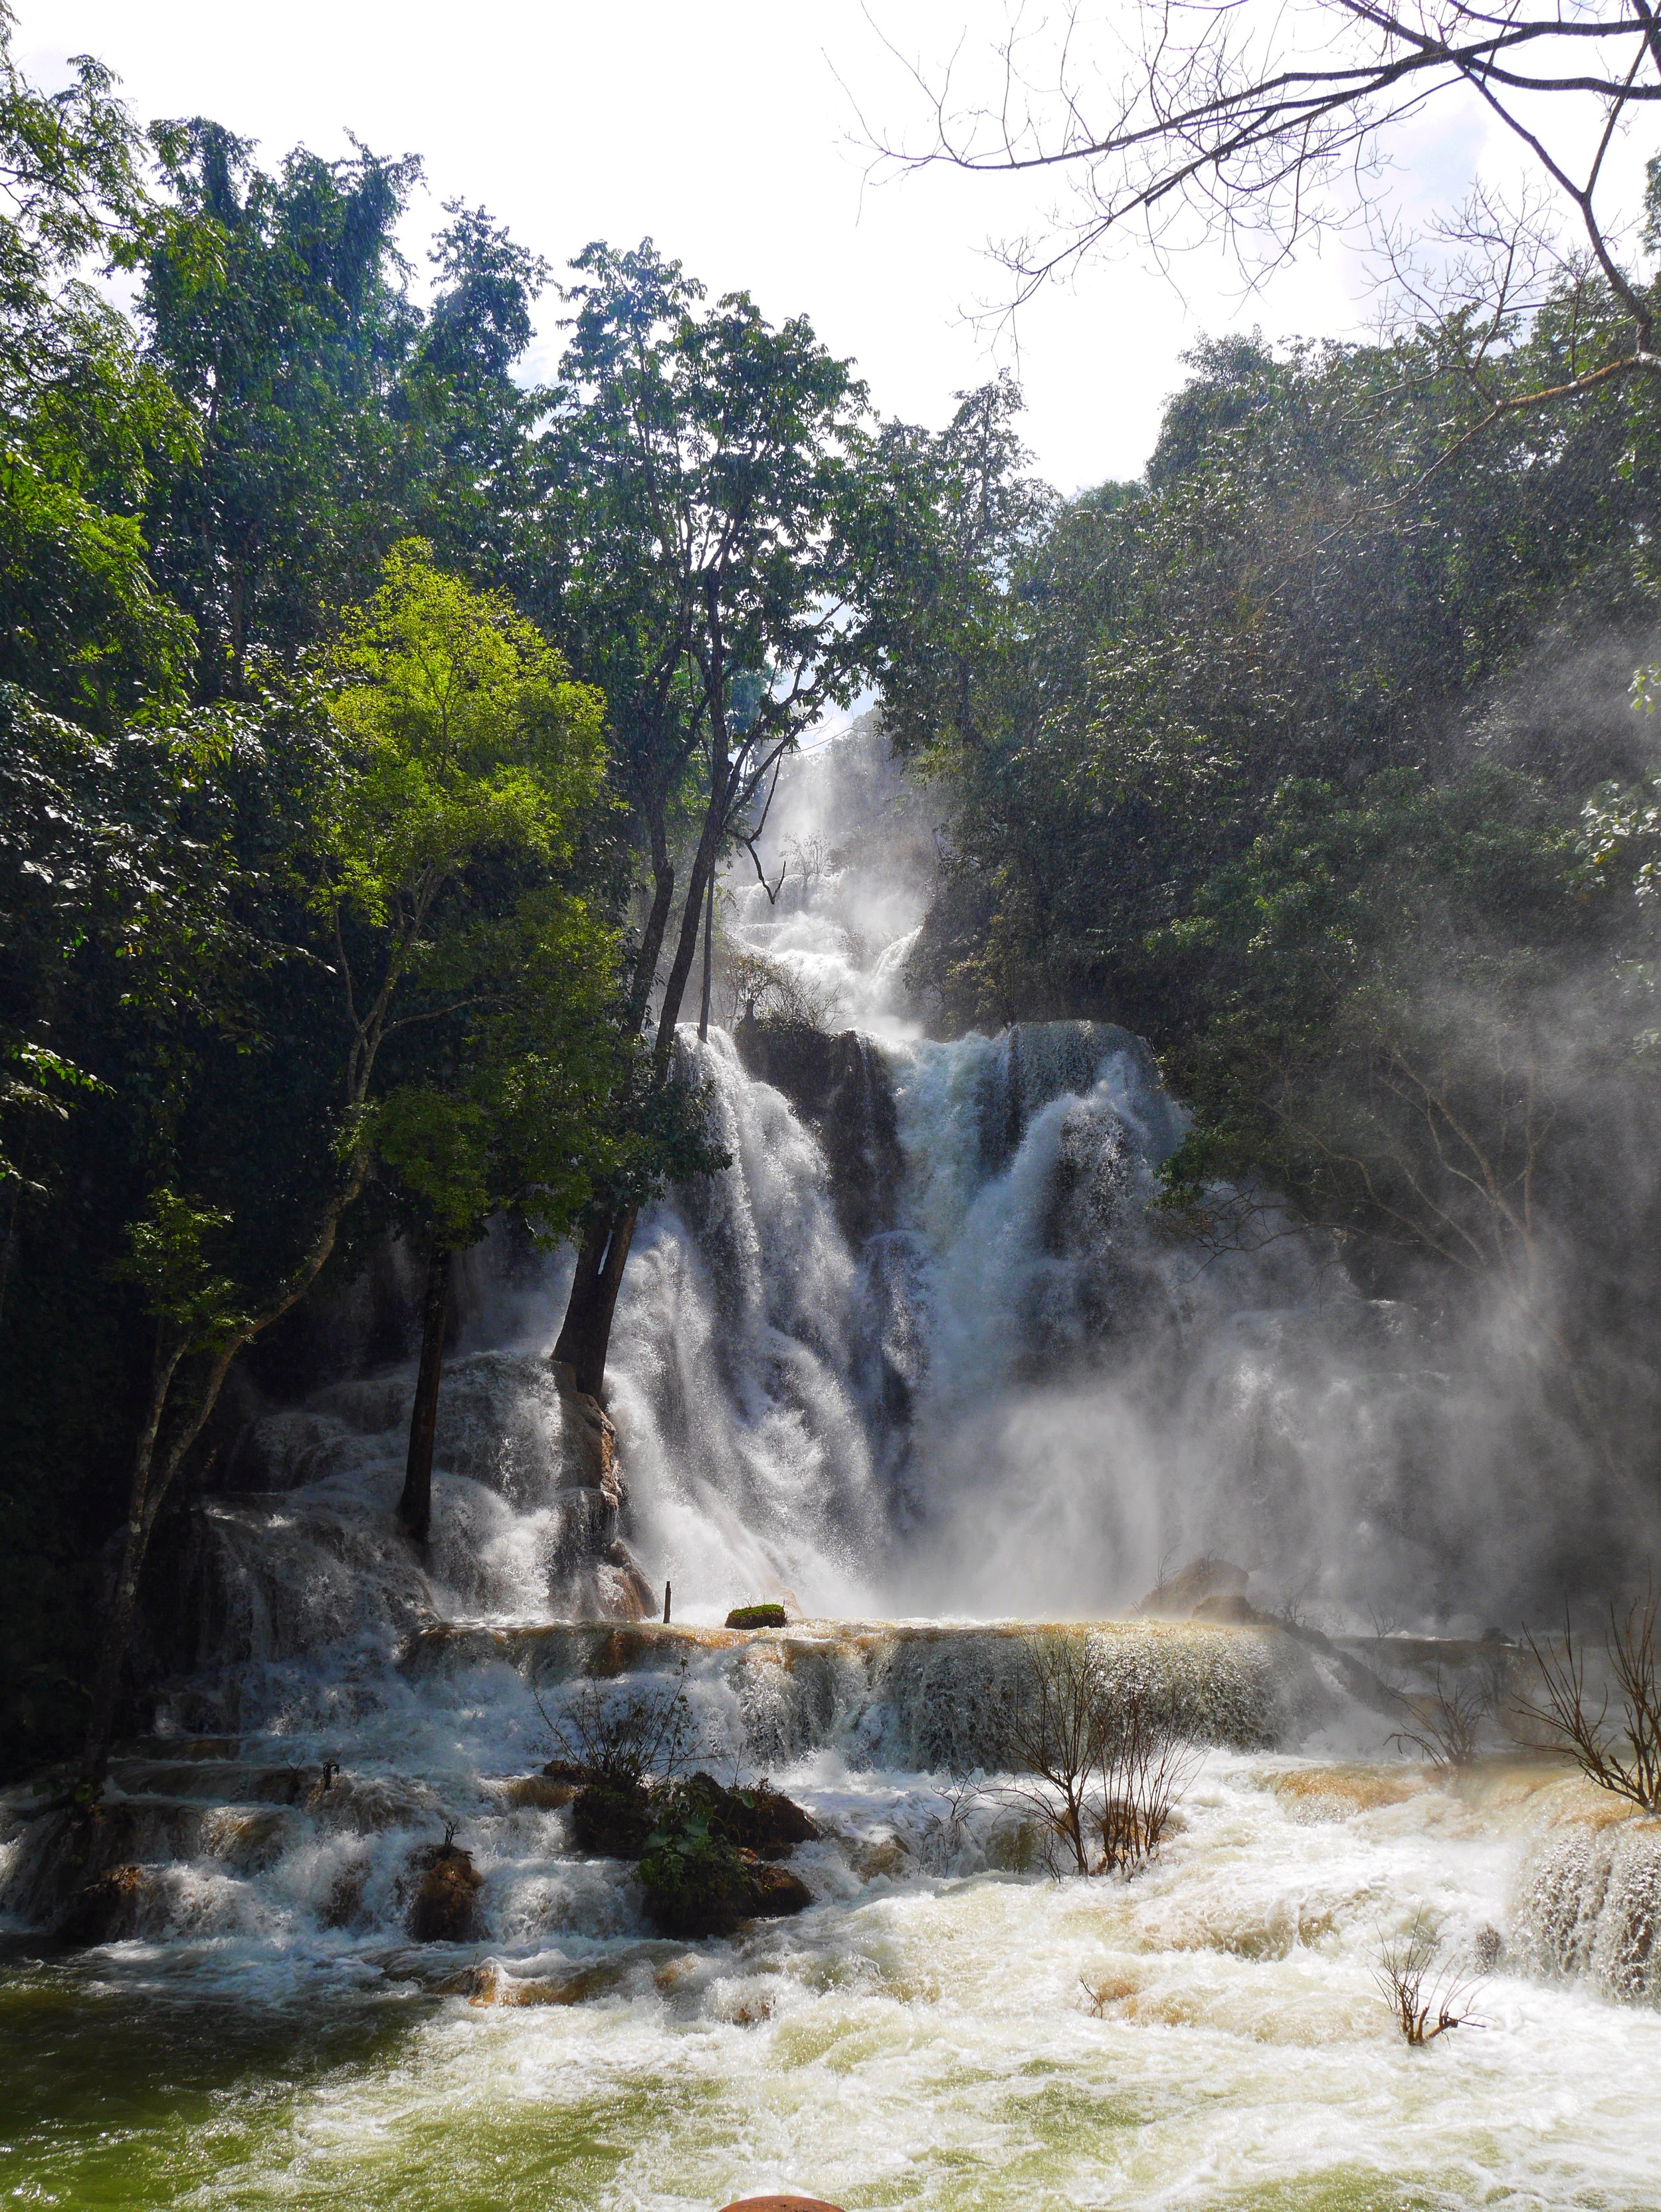 The world-famous Kuang Si Falls are located just 30km outside of Luang Prabang, and make for a great half-day trip from the city